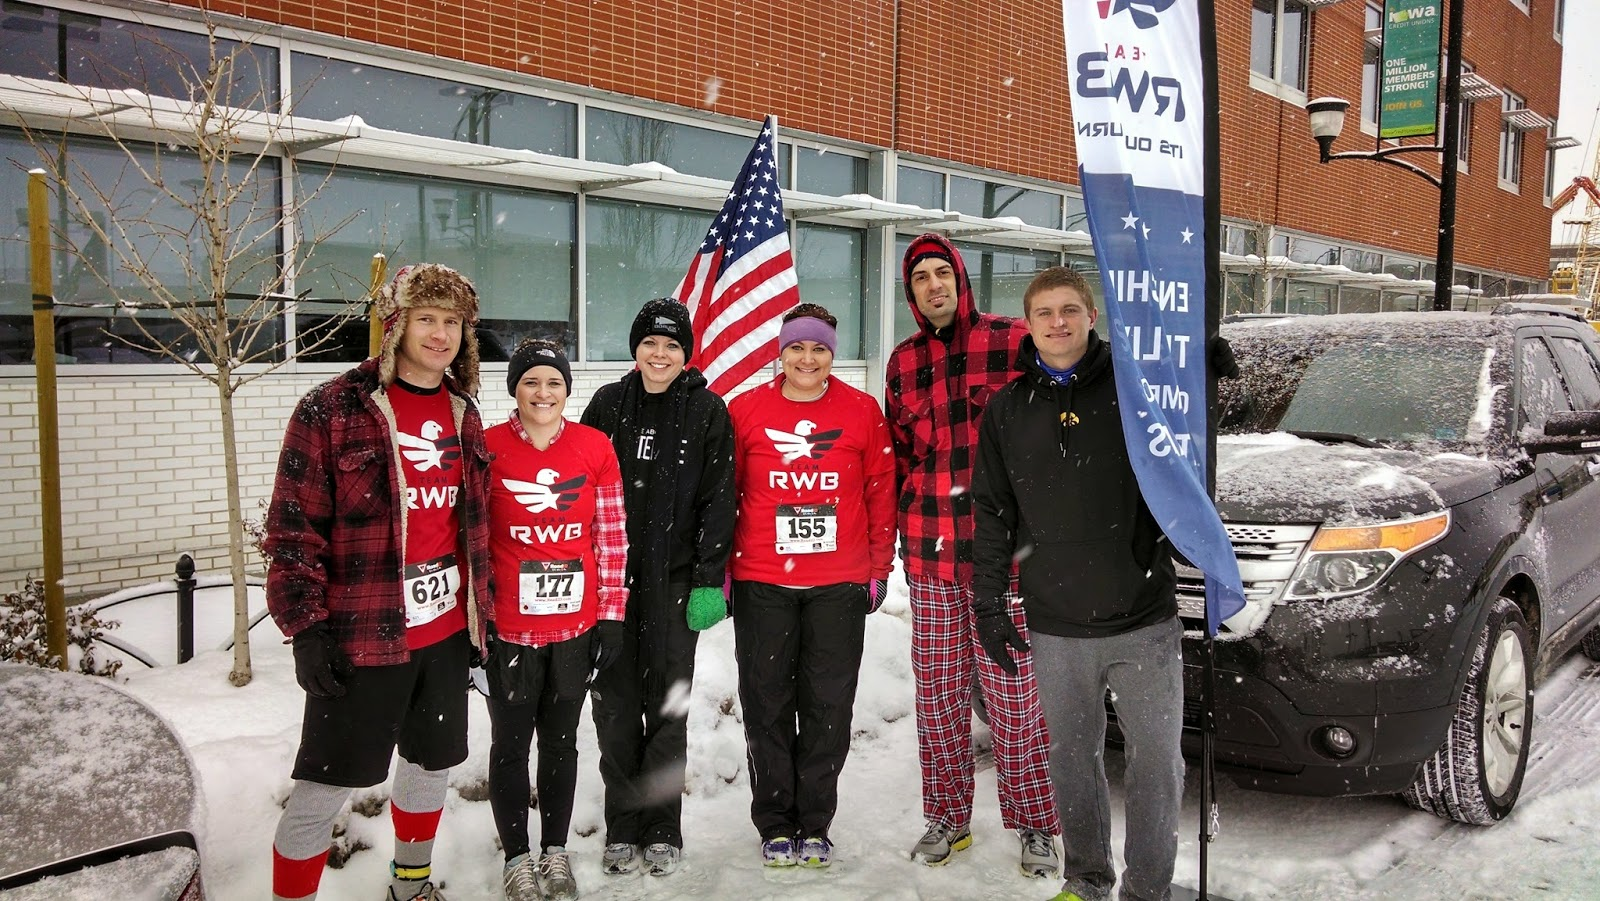 Team RWB Des Moines at the Red Flannel Run - Corn, Beans, Pigs & Kids May Comments for a Cause